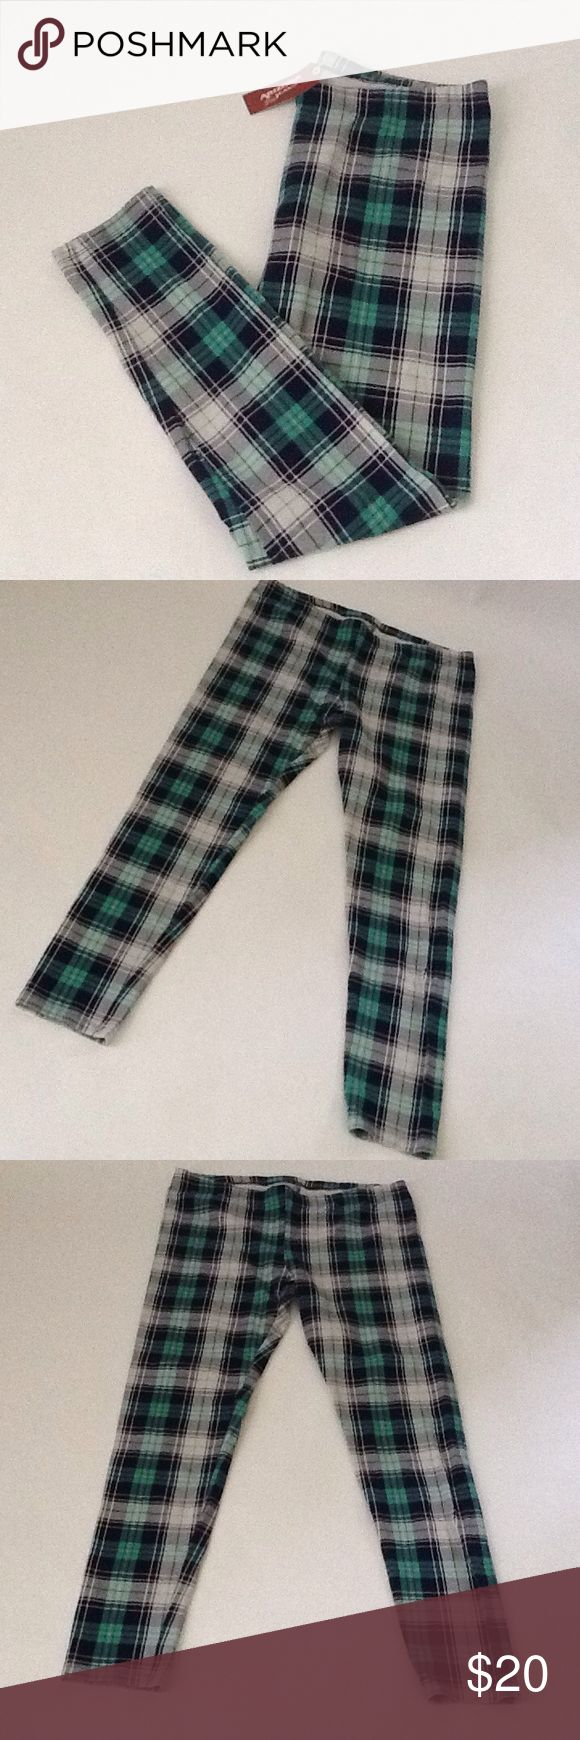 Striped Multi Color Leggings These leggings are New and have never been Worn!! They have multiple colors of Green, Black, White, and Navy Blue.                                   **Reasonable Offers Only** Arizona Jean Company Pants Leggings